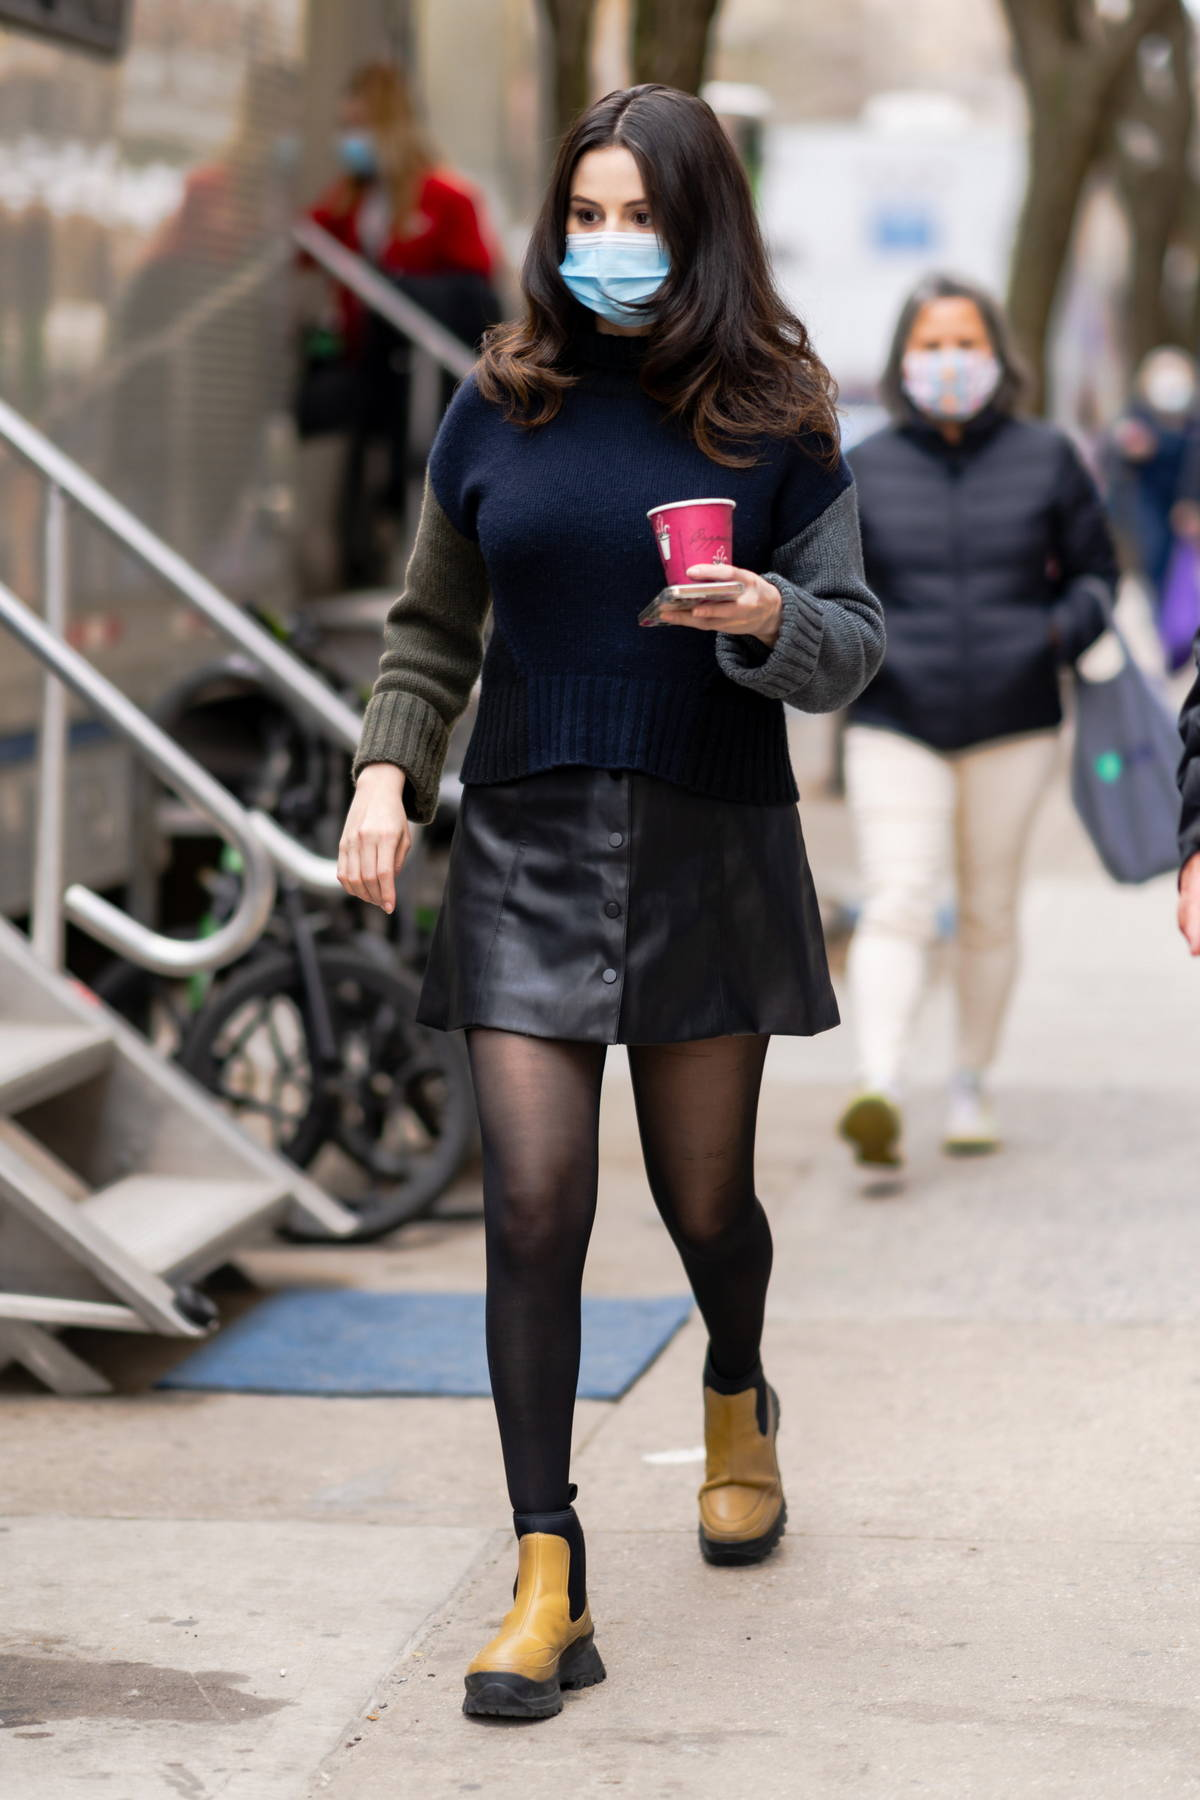 Selena Gomez wears a sweater and black leather jacket as she arrives on the set of 'Only Murders in the Building' in New York City